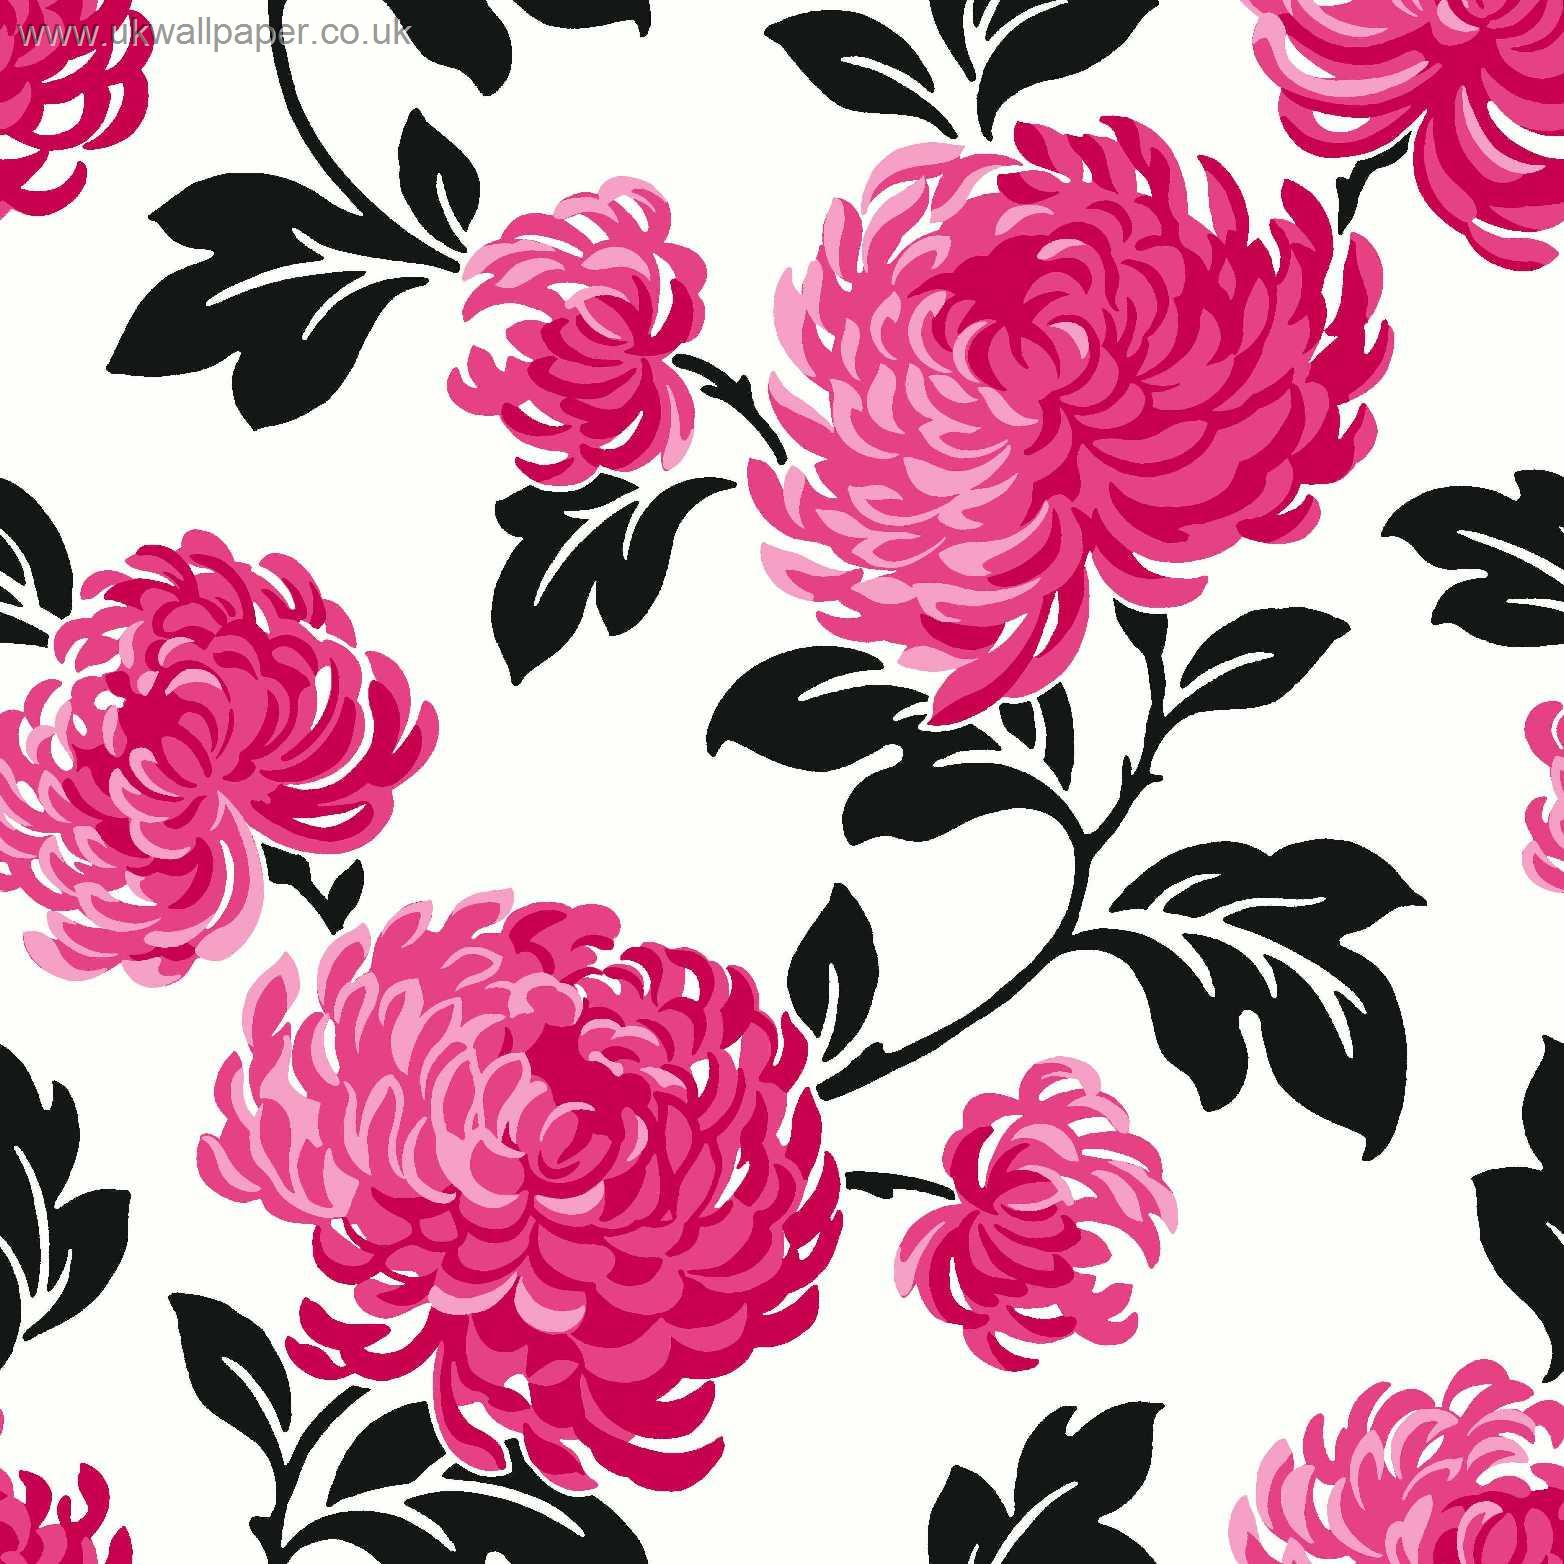 pink flower wallpaper designs. top sale spring floral large floral